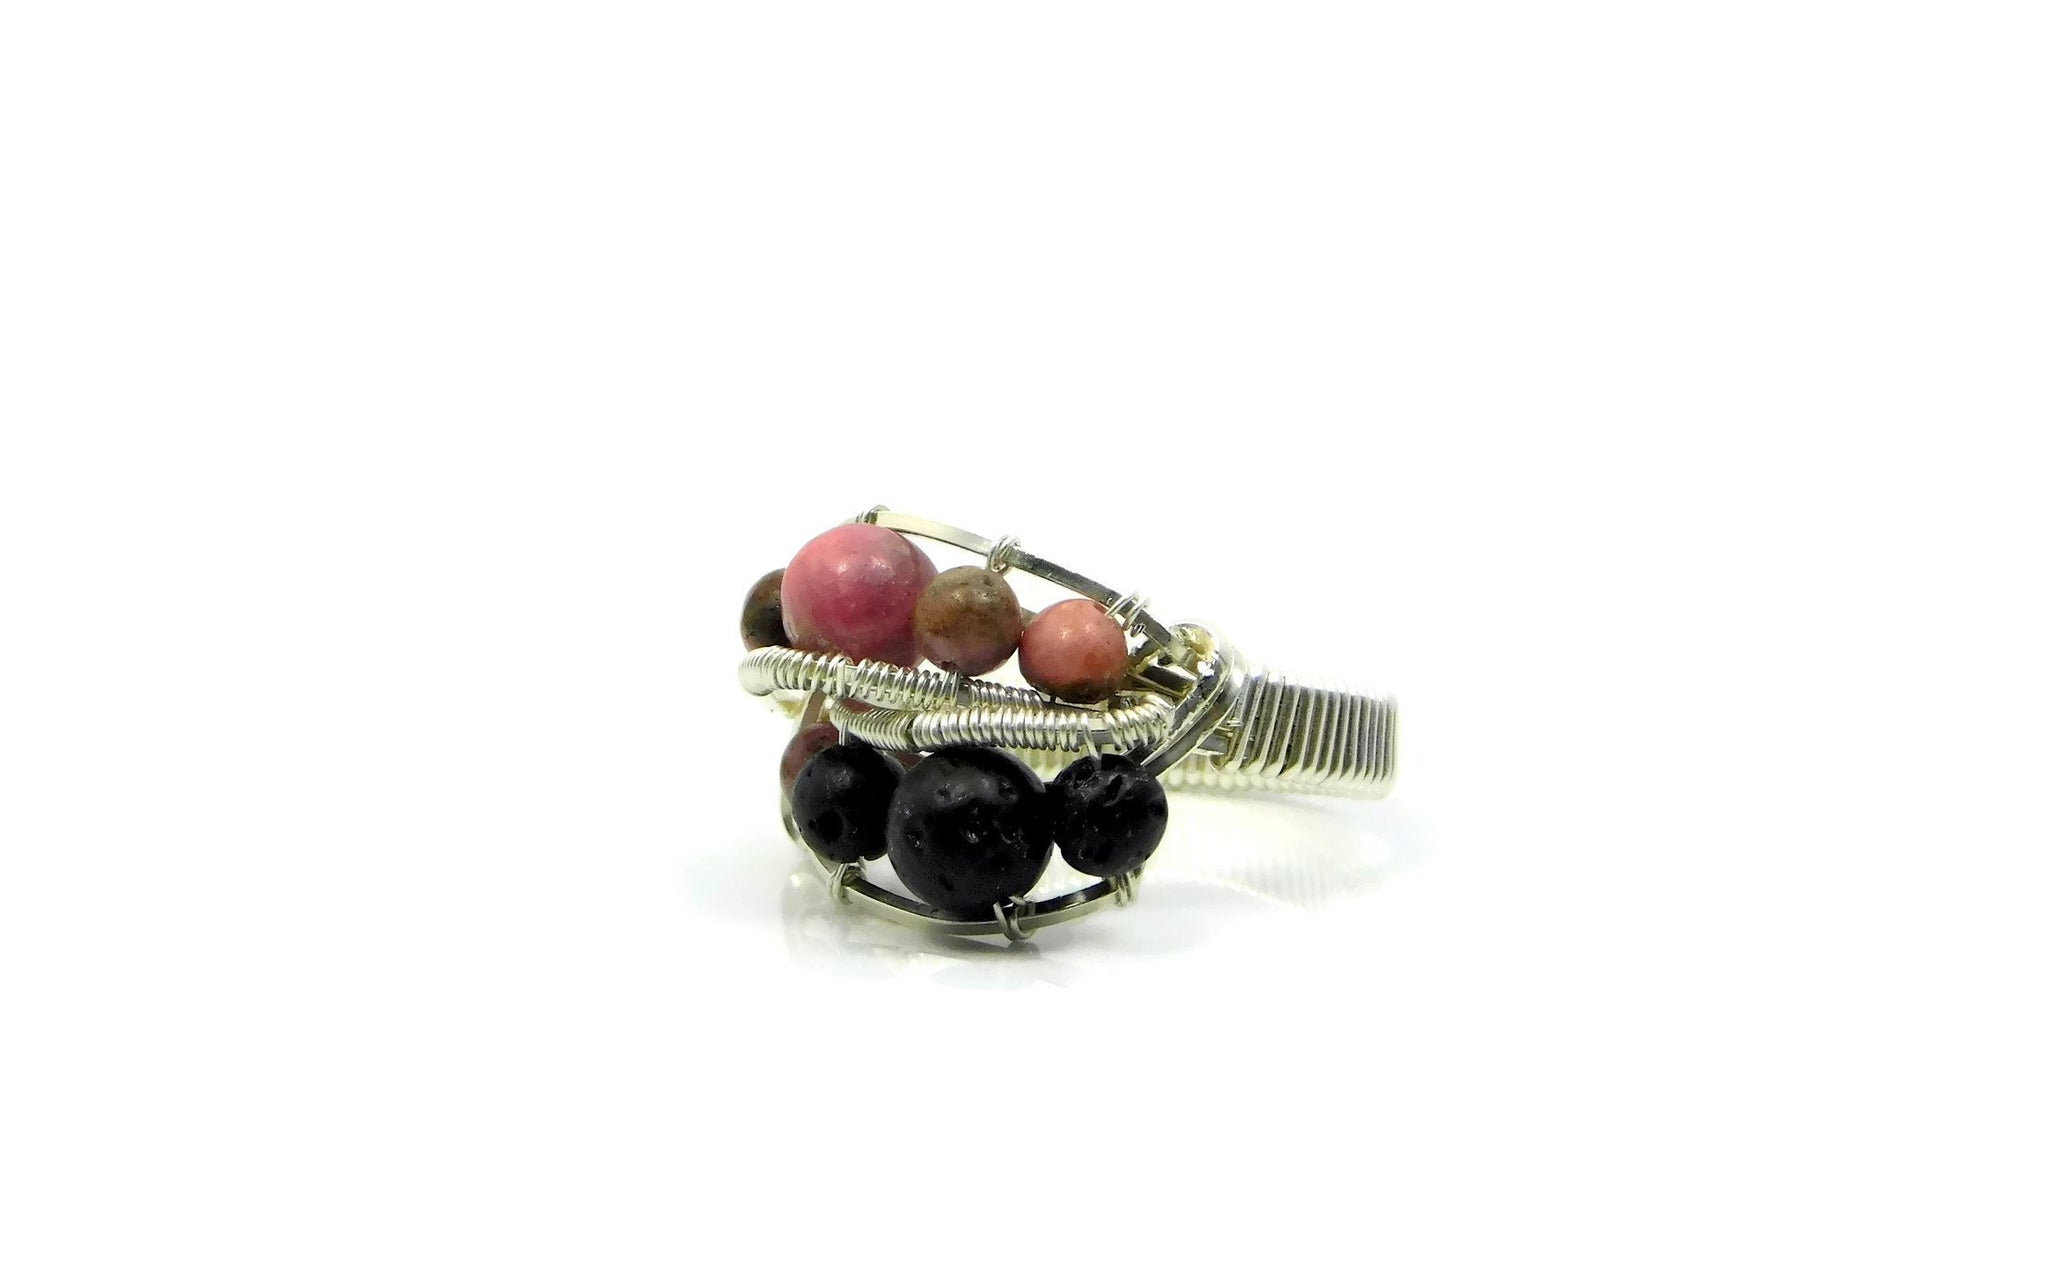 Rhodonite and Lava Stone Ring in sterling silver and 14kt gold fill cold fusion jewelry gold and silver jewelry handmade silver jewelry sterling silver jewelry artisan jewelry handmade gemstone jewelry one of a kind jewelry unique jewelry gemstone rings